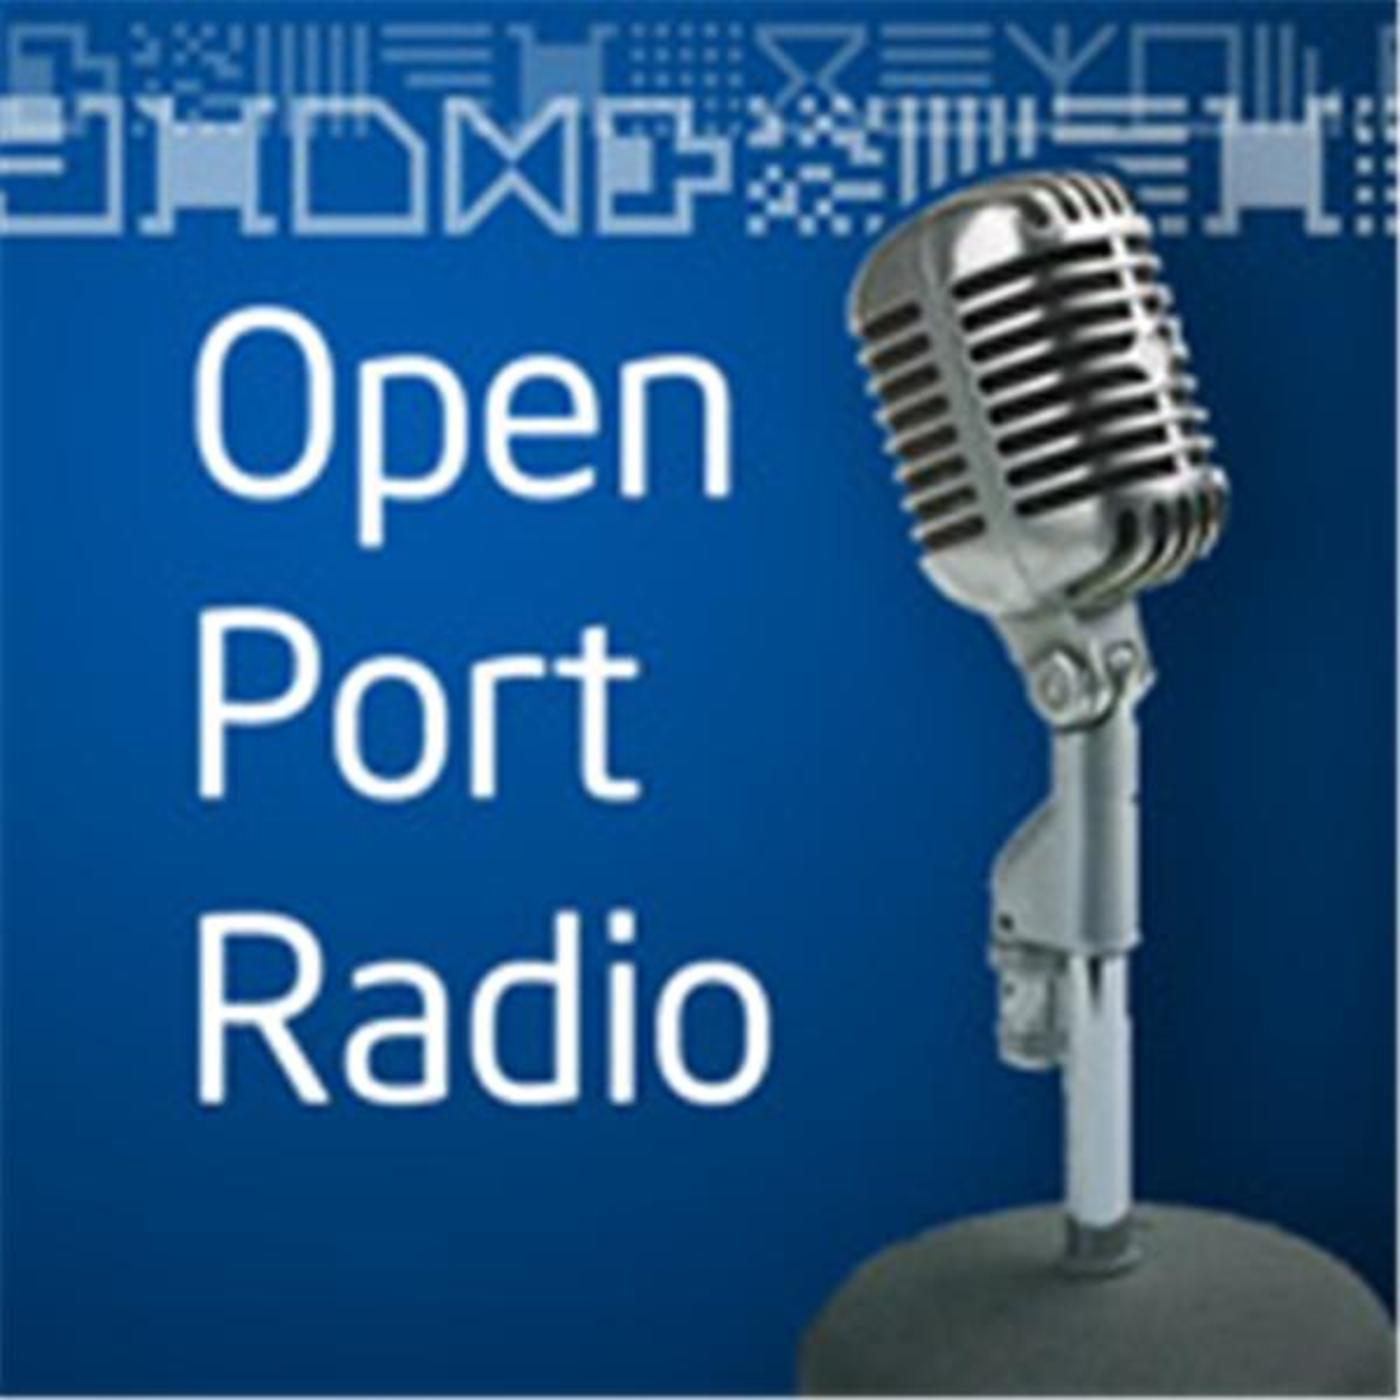 Intel Open Port Radio